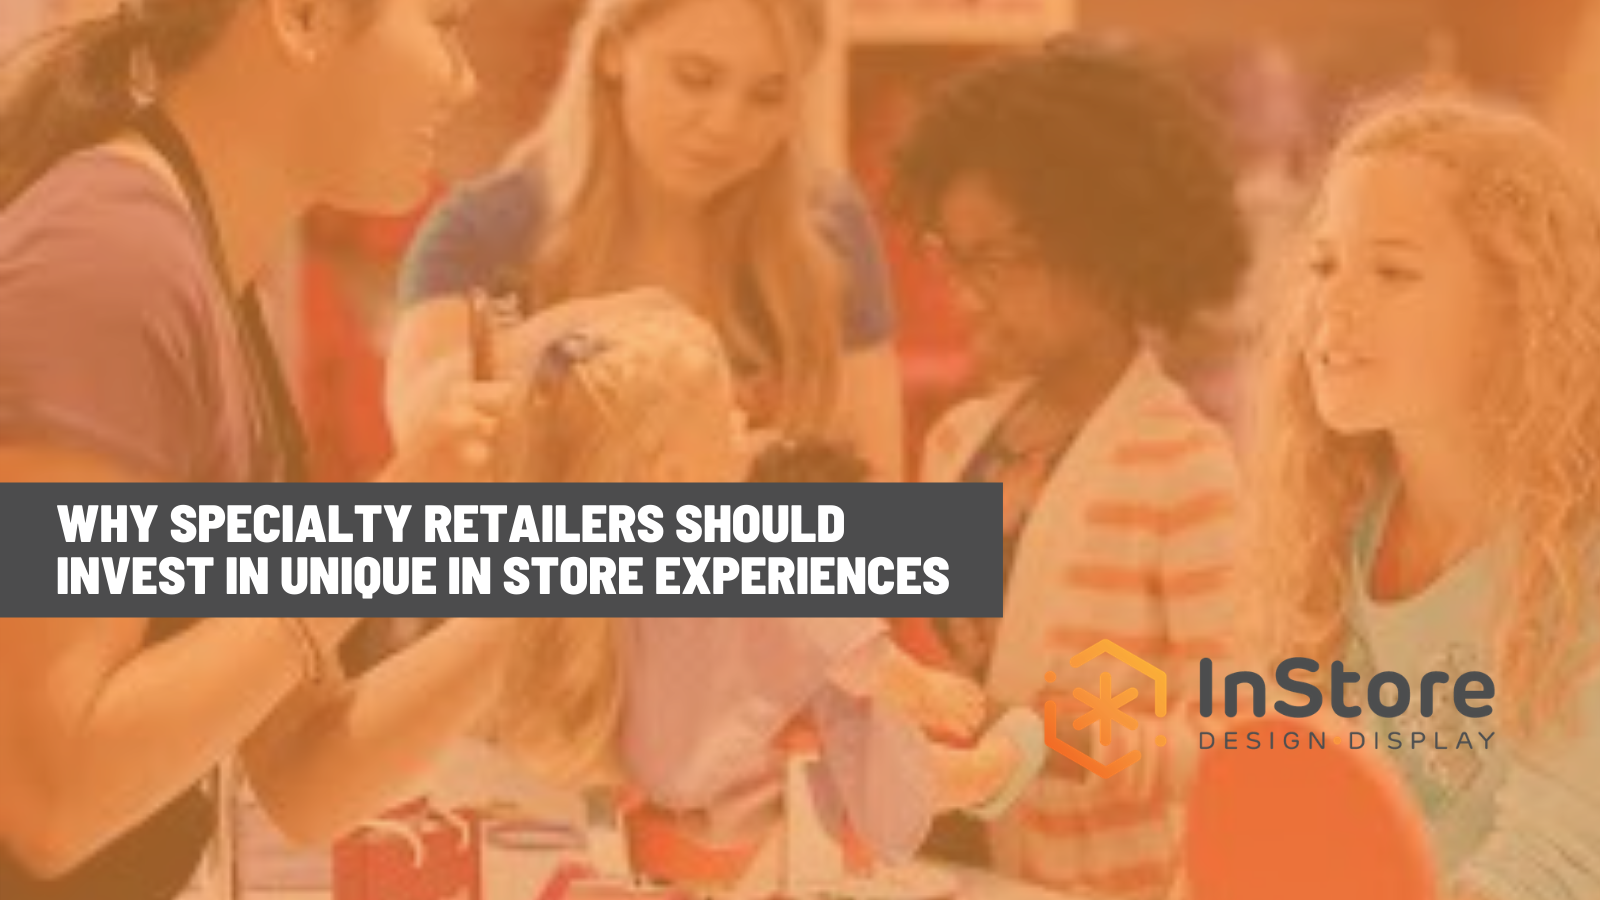 Why You Should Invest in Specialty Store Services for Your Retail Business